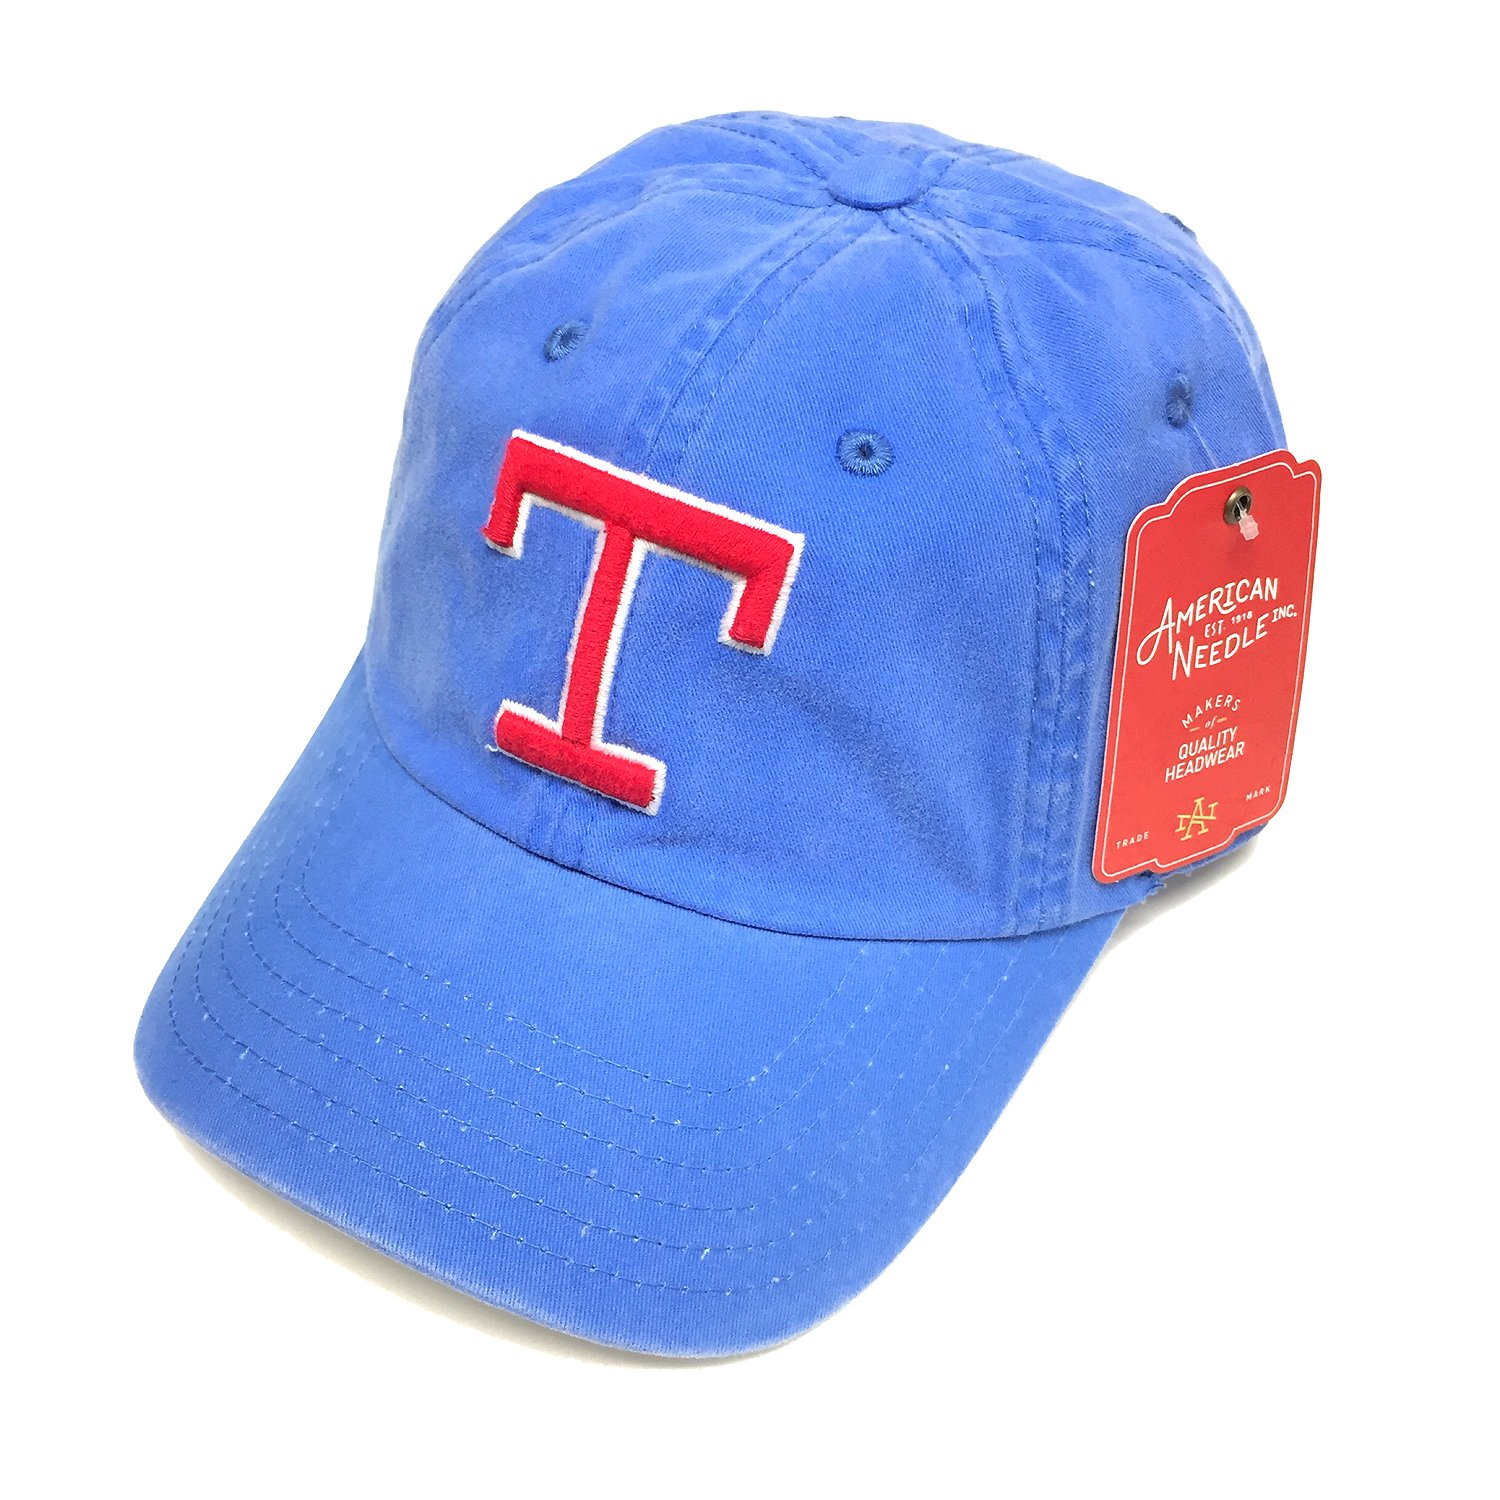 2154822aabe Get Quotations · American Needle MLB Texas Rangers Team New Raglin Under  Visor Adjustable Cap